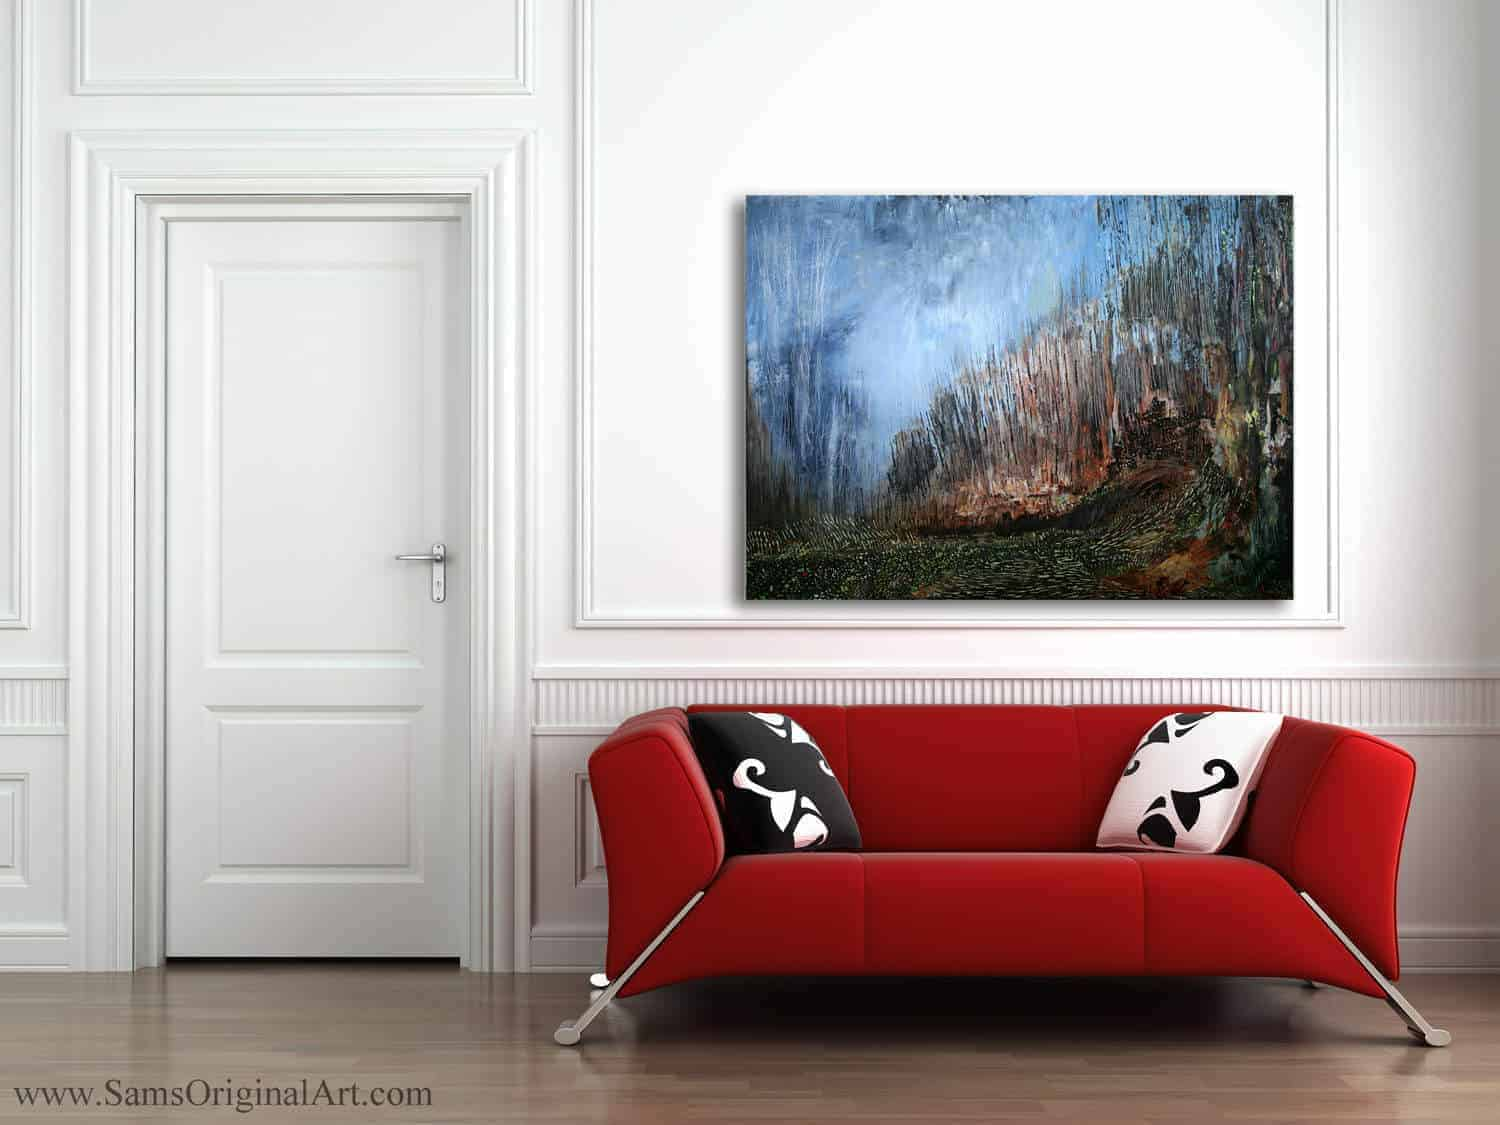 Giclee Wall Print Title: Zephyr